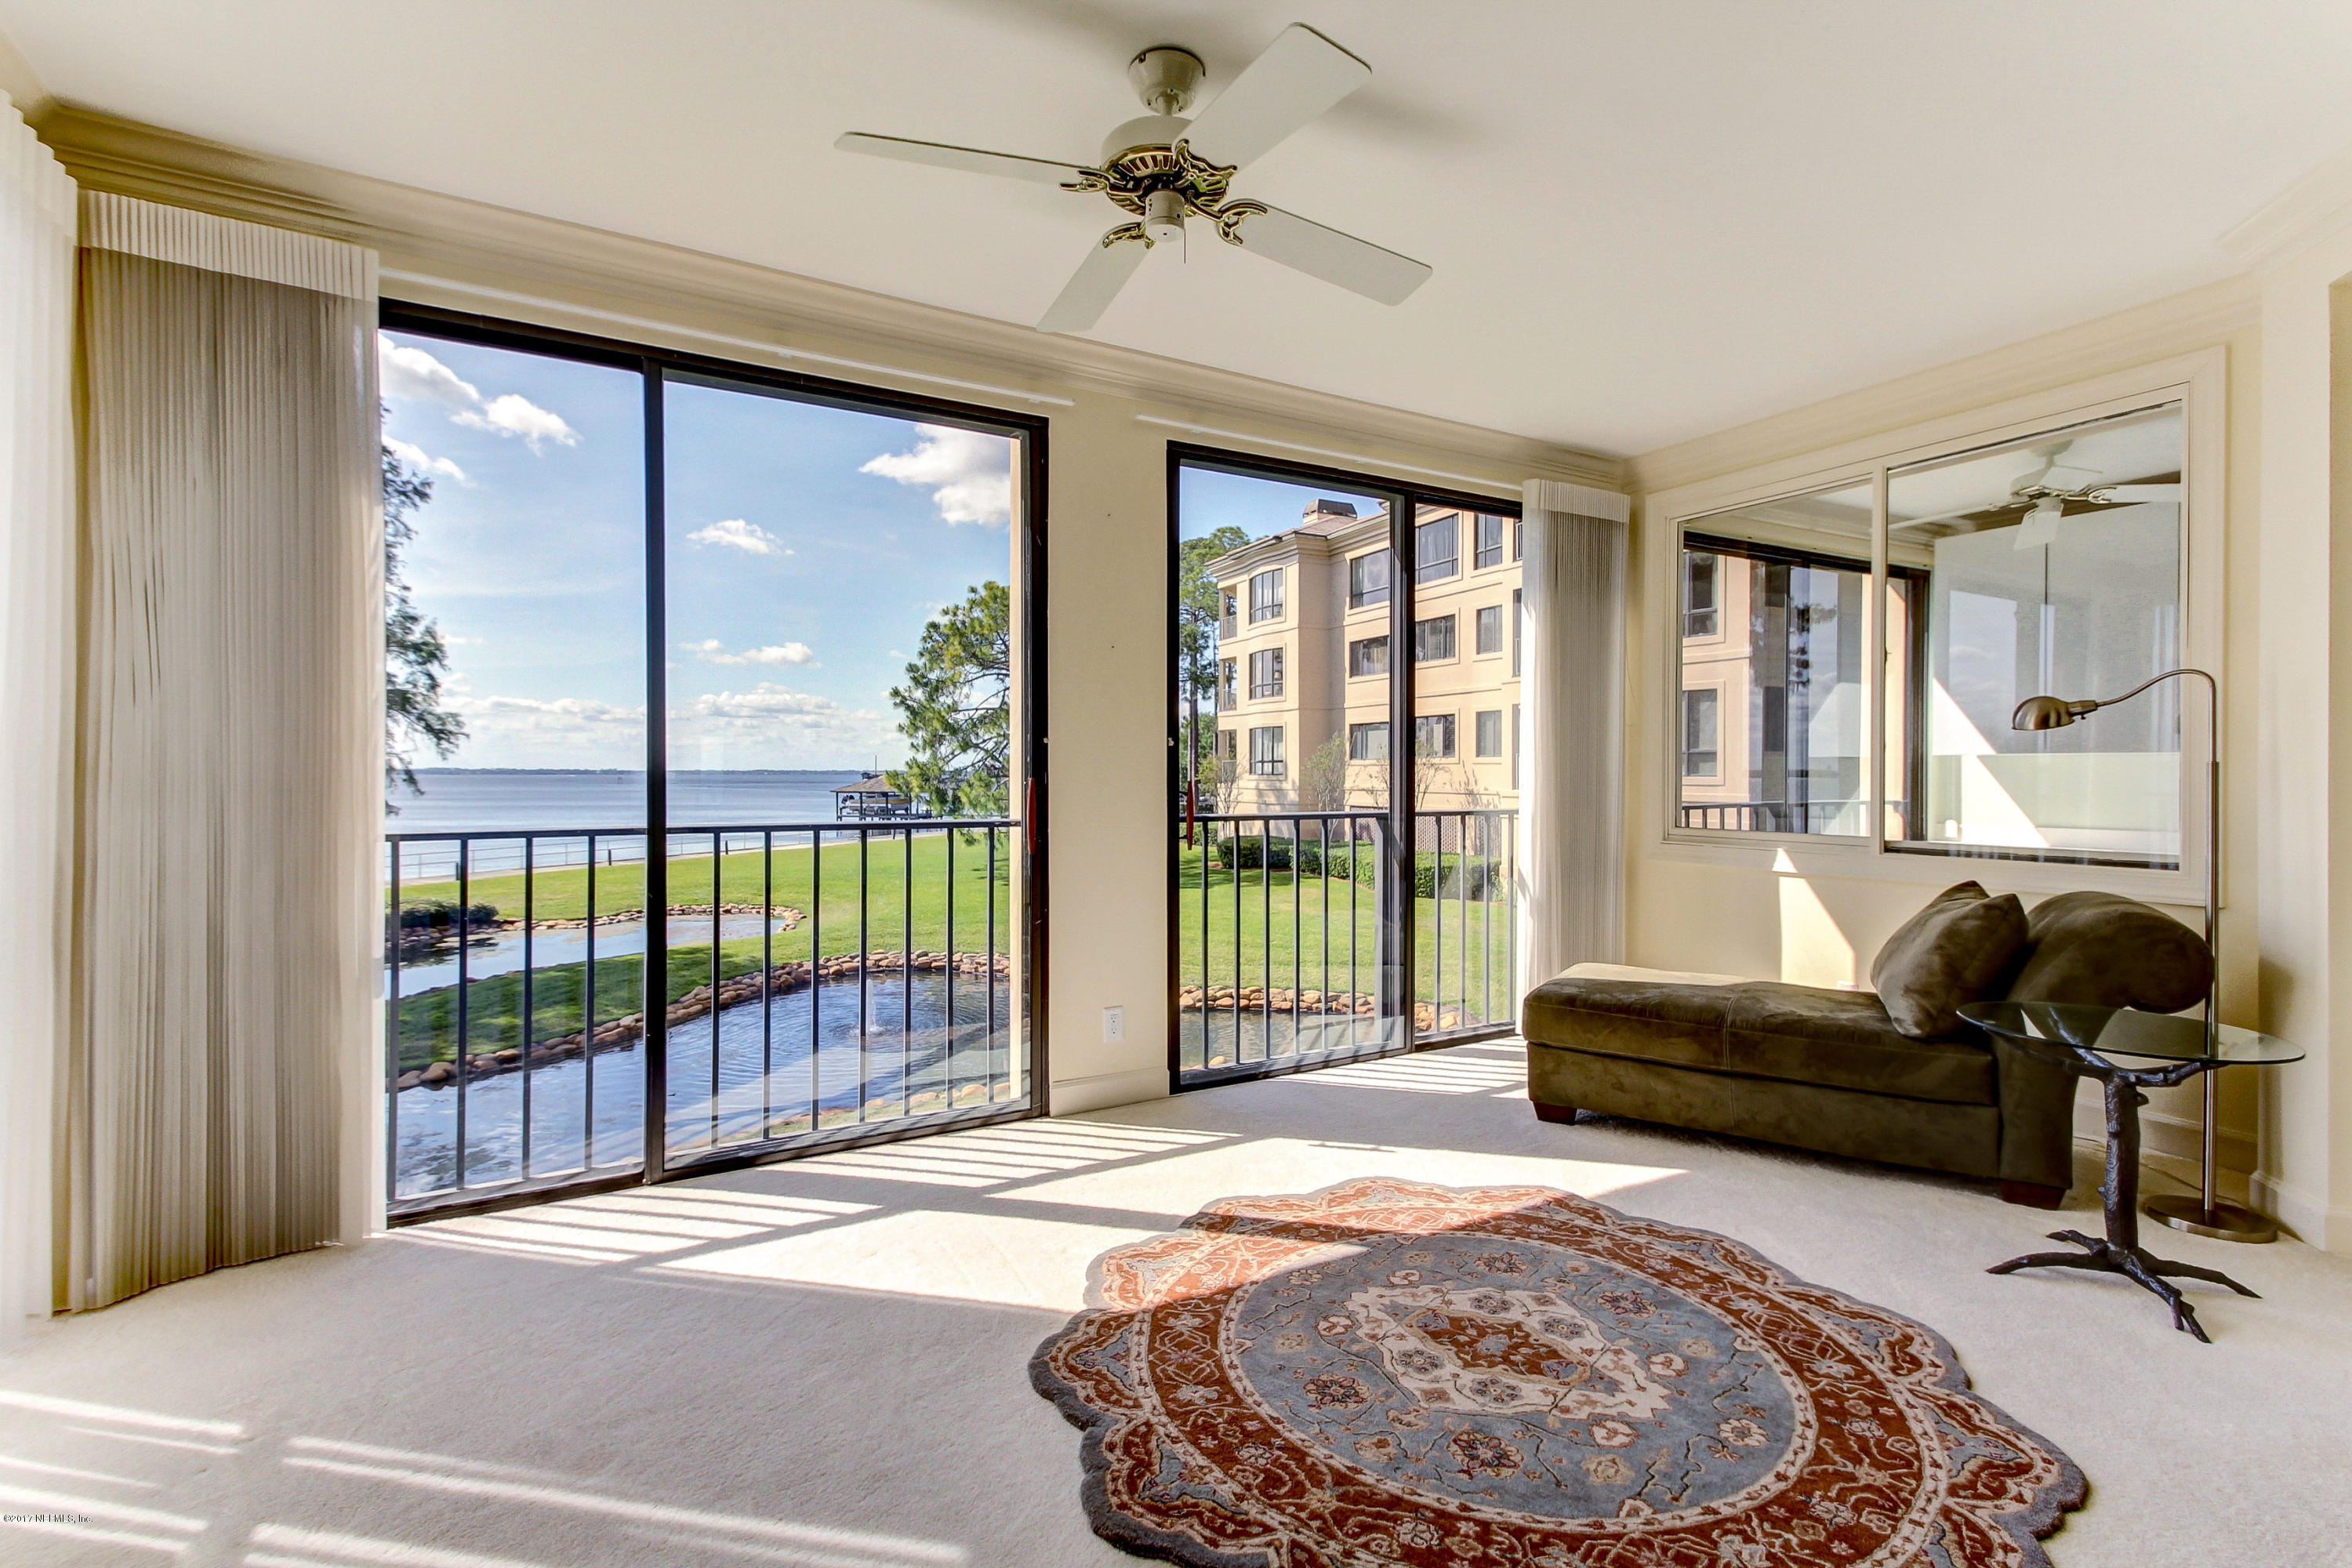 6740 EPPING FOREST, JACKSONVILLE, FLORIDA 32217, 2 Bedrooms Bedrooms, ,2 BathroomsBathrooms,Residential - condos/townhomes,For sale,EPPING FOREST,962540